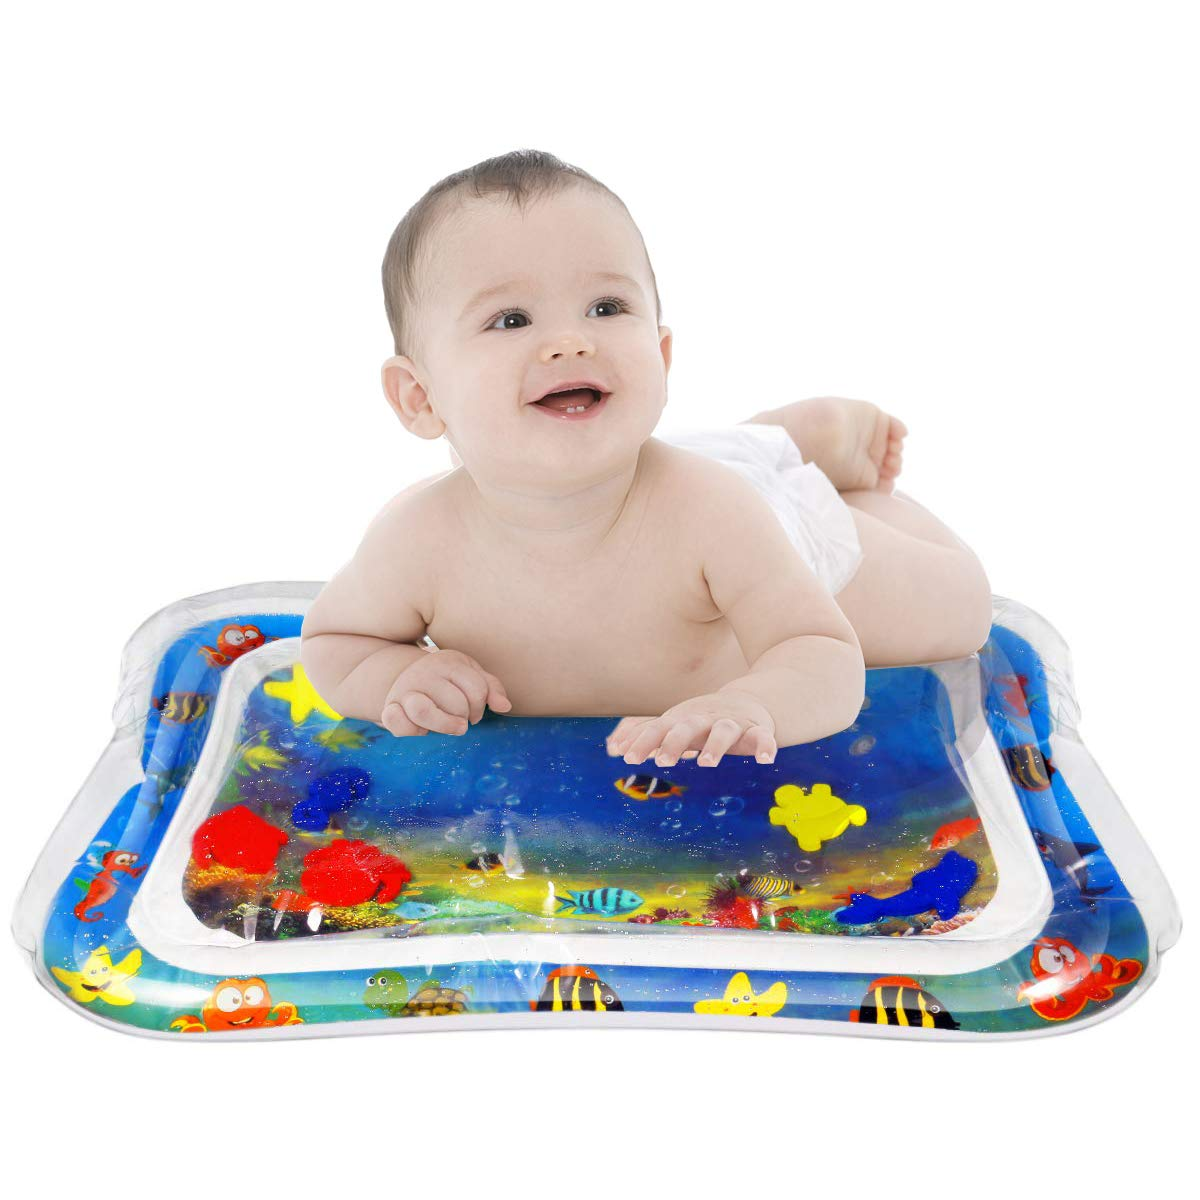 Jishy Inflatable Tummy Time Mat Baby Premium Water Mat Play Mat for Infant and Toddlers,Fun and Perfect Activity Center(26 X 20 inches)